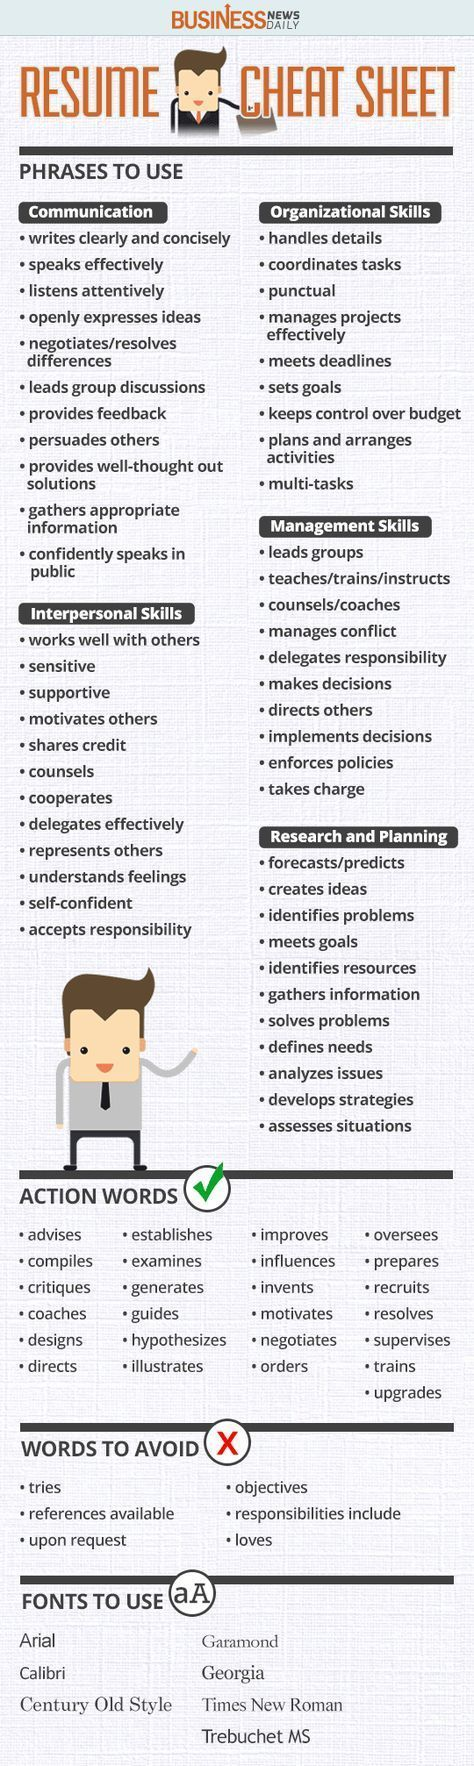 The Only Resume Cheat Sheet You Will Ever Need | Favorites ...